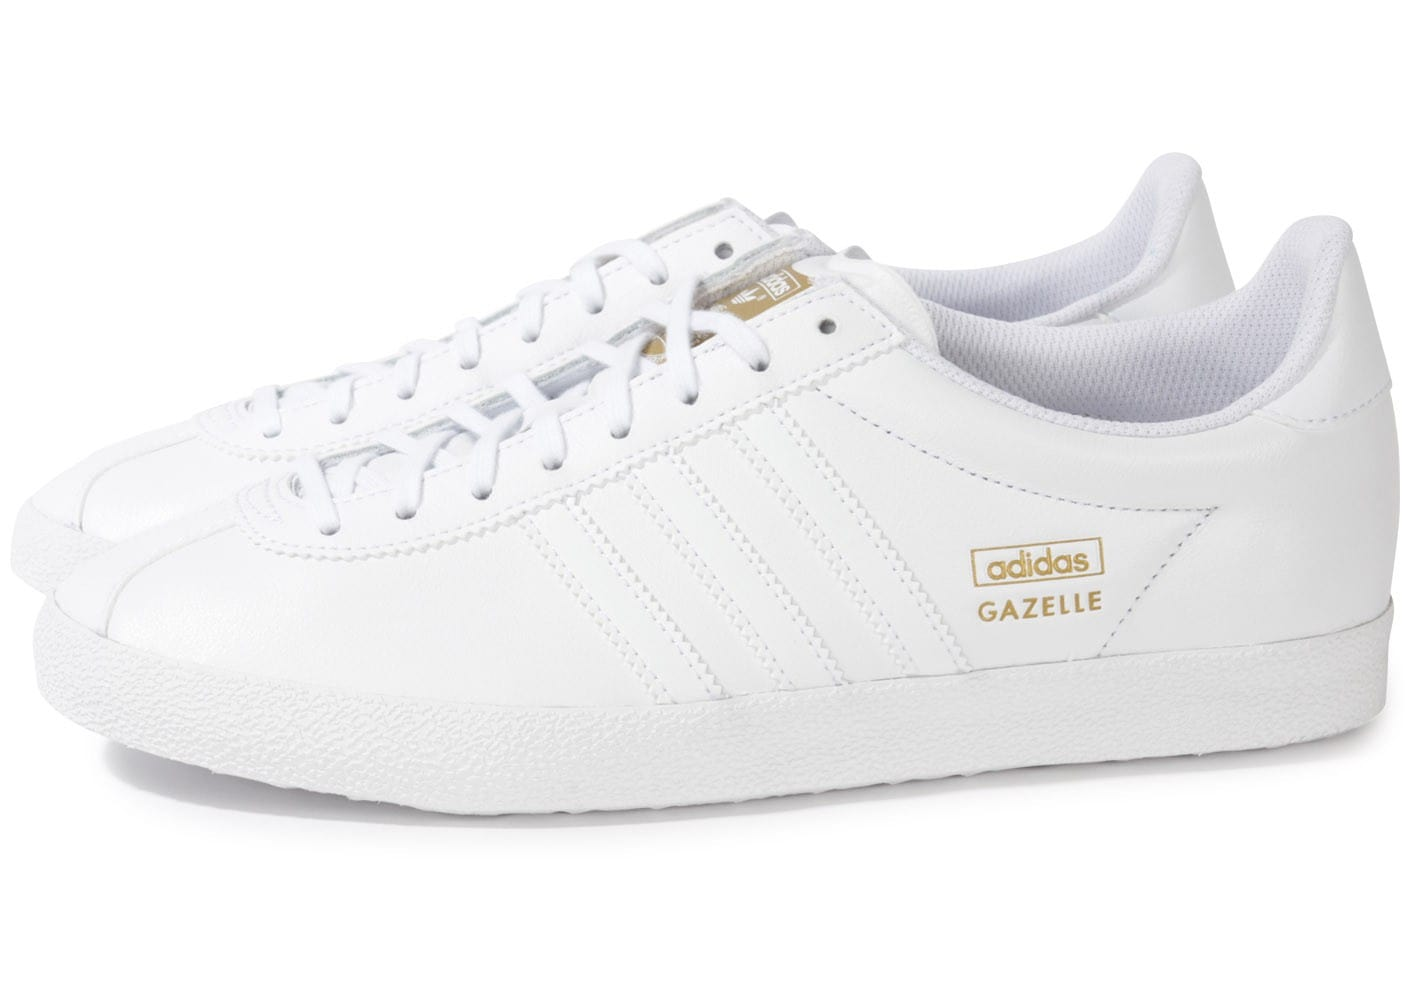 save up to 80% online store 100% quality adidas original gazelle homme